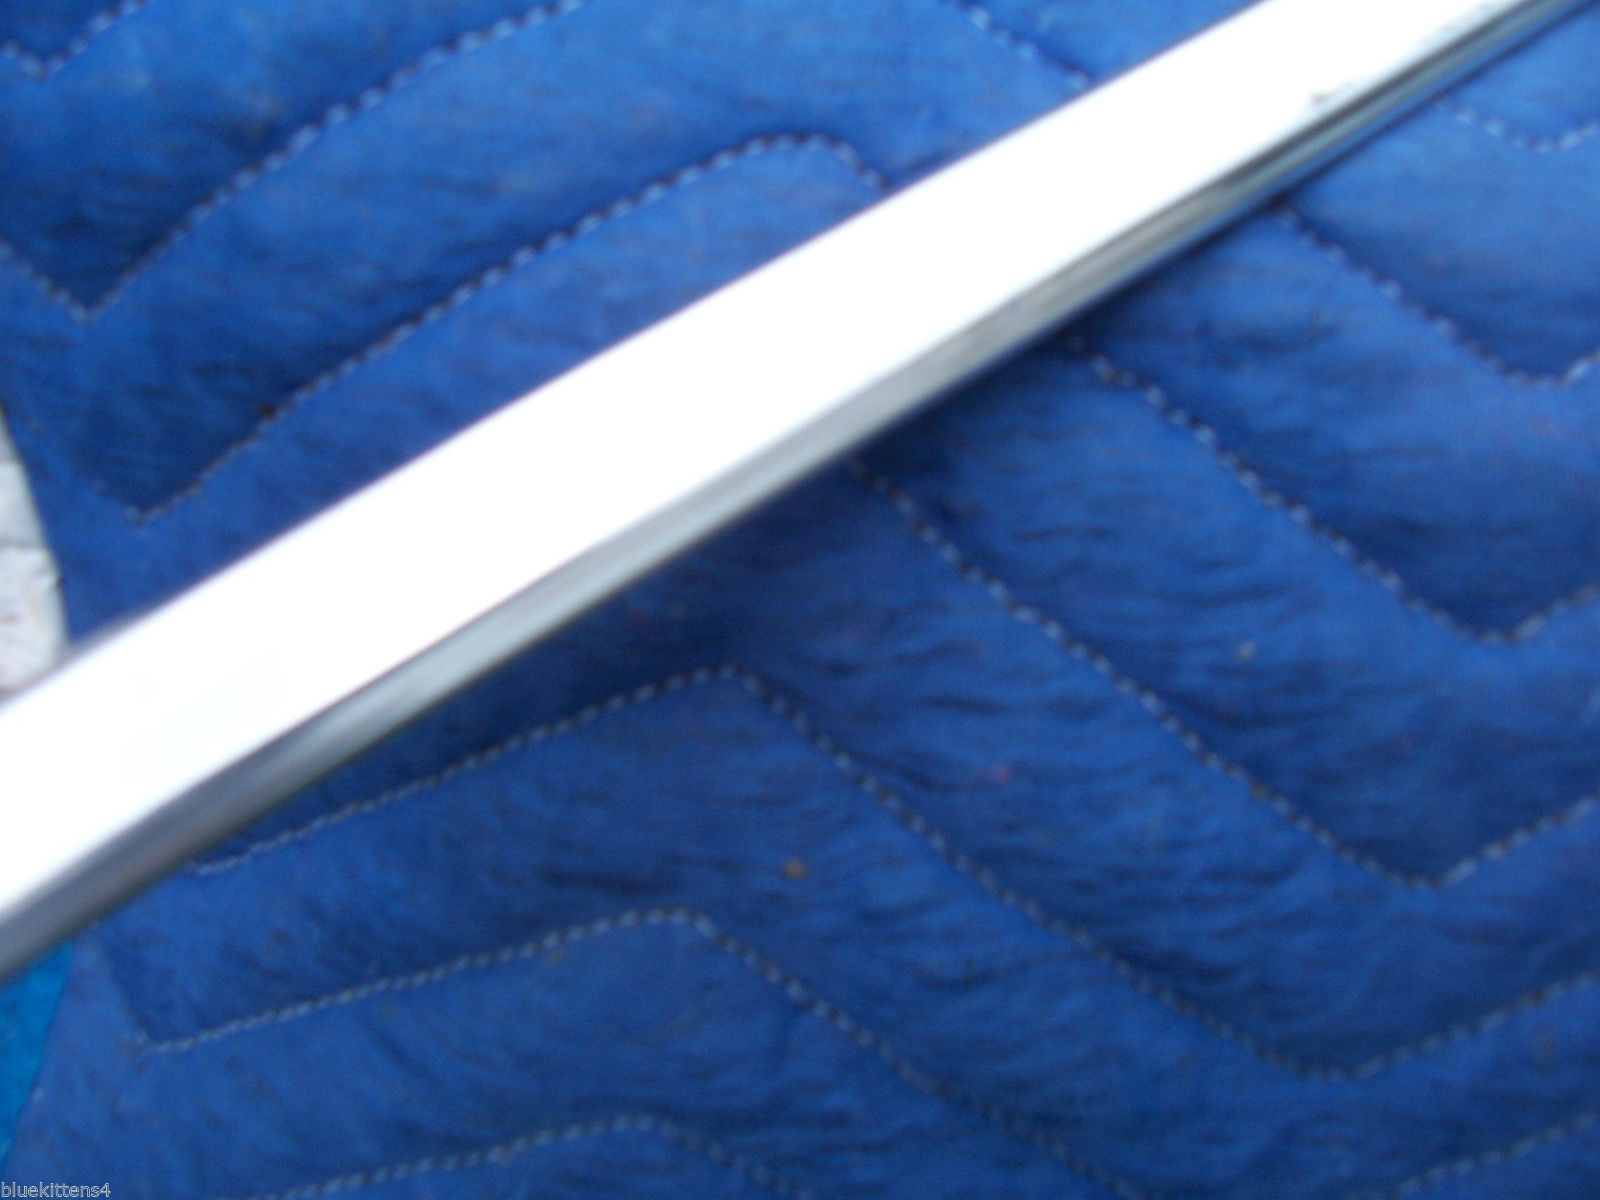 1978 1979  CONTINENTAL 2 DOOR COUPE RIGHT REAR FENDER TRIM MOLDING OEM LINCOLN image 6